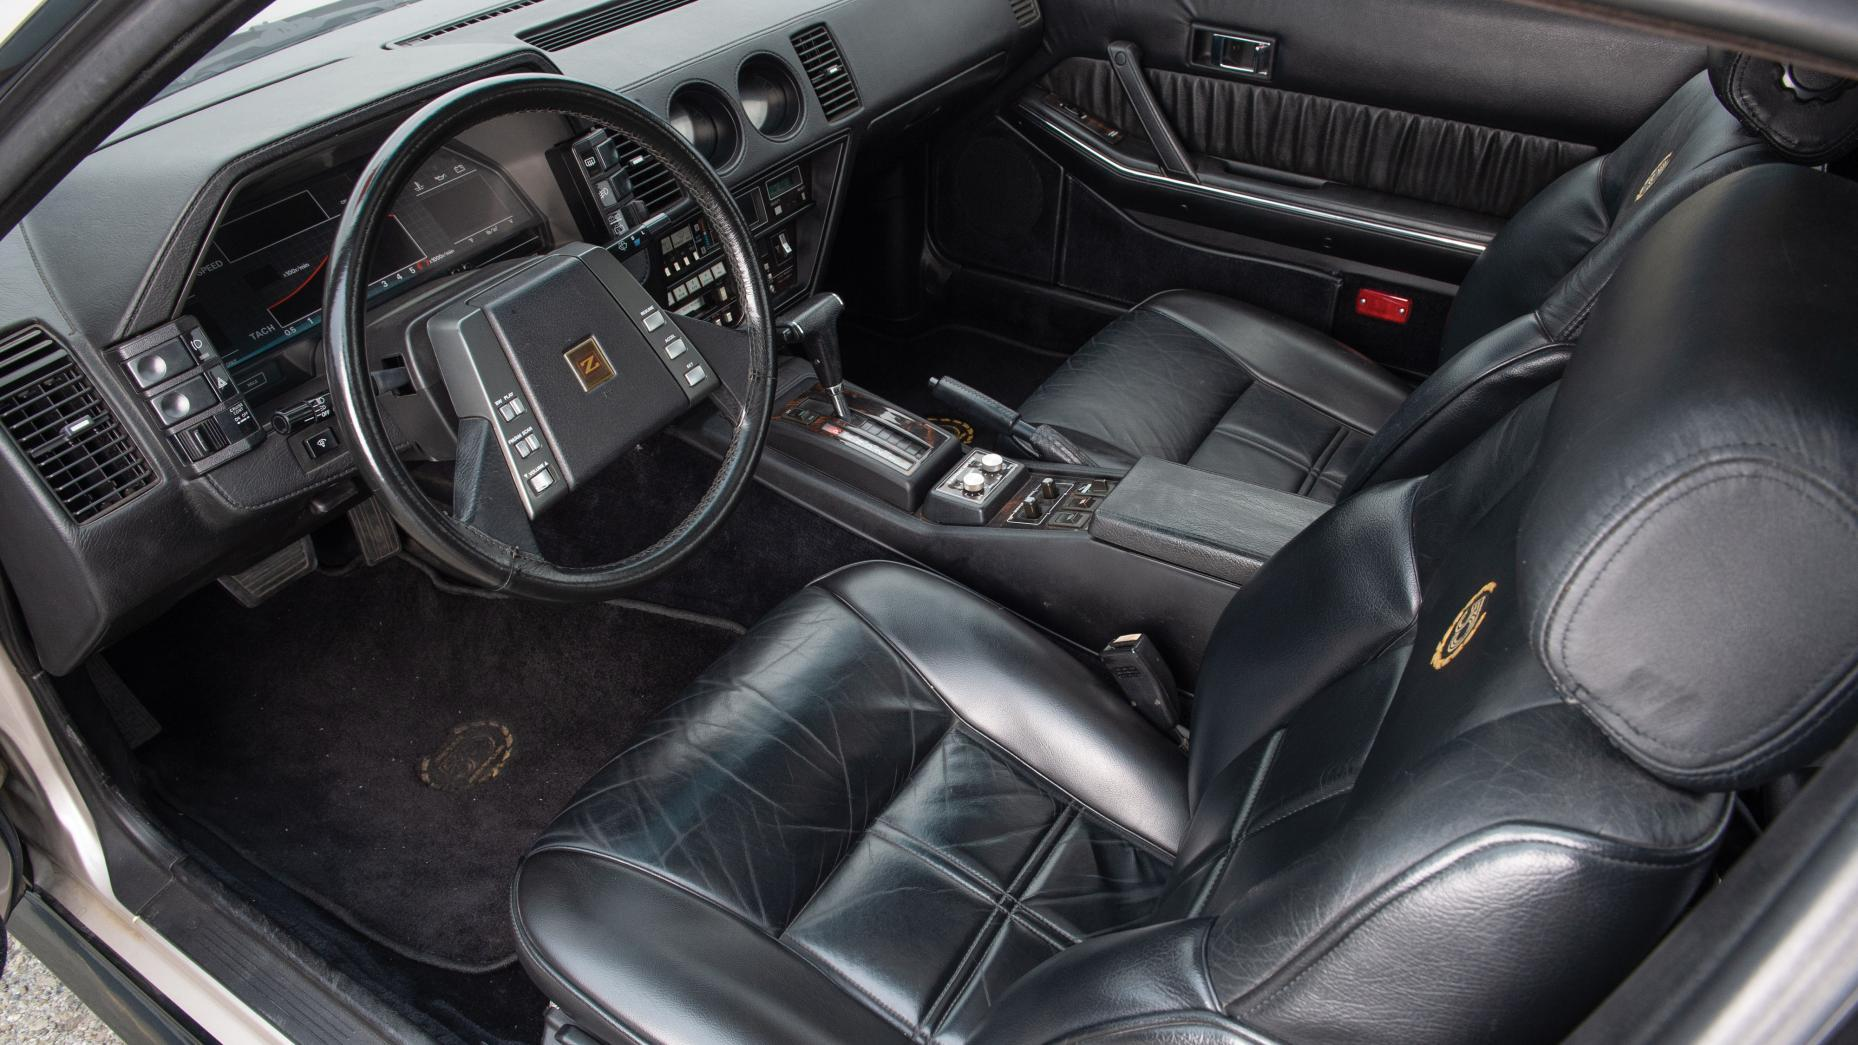 1984 Nissan 300ZX Turbo 50th Anniversary interieur